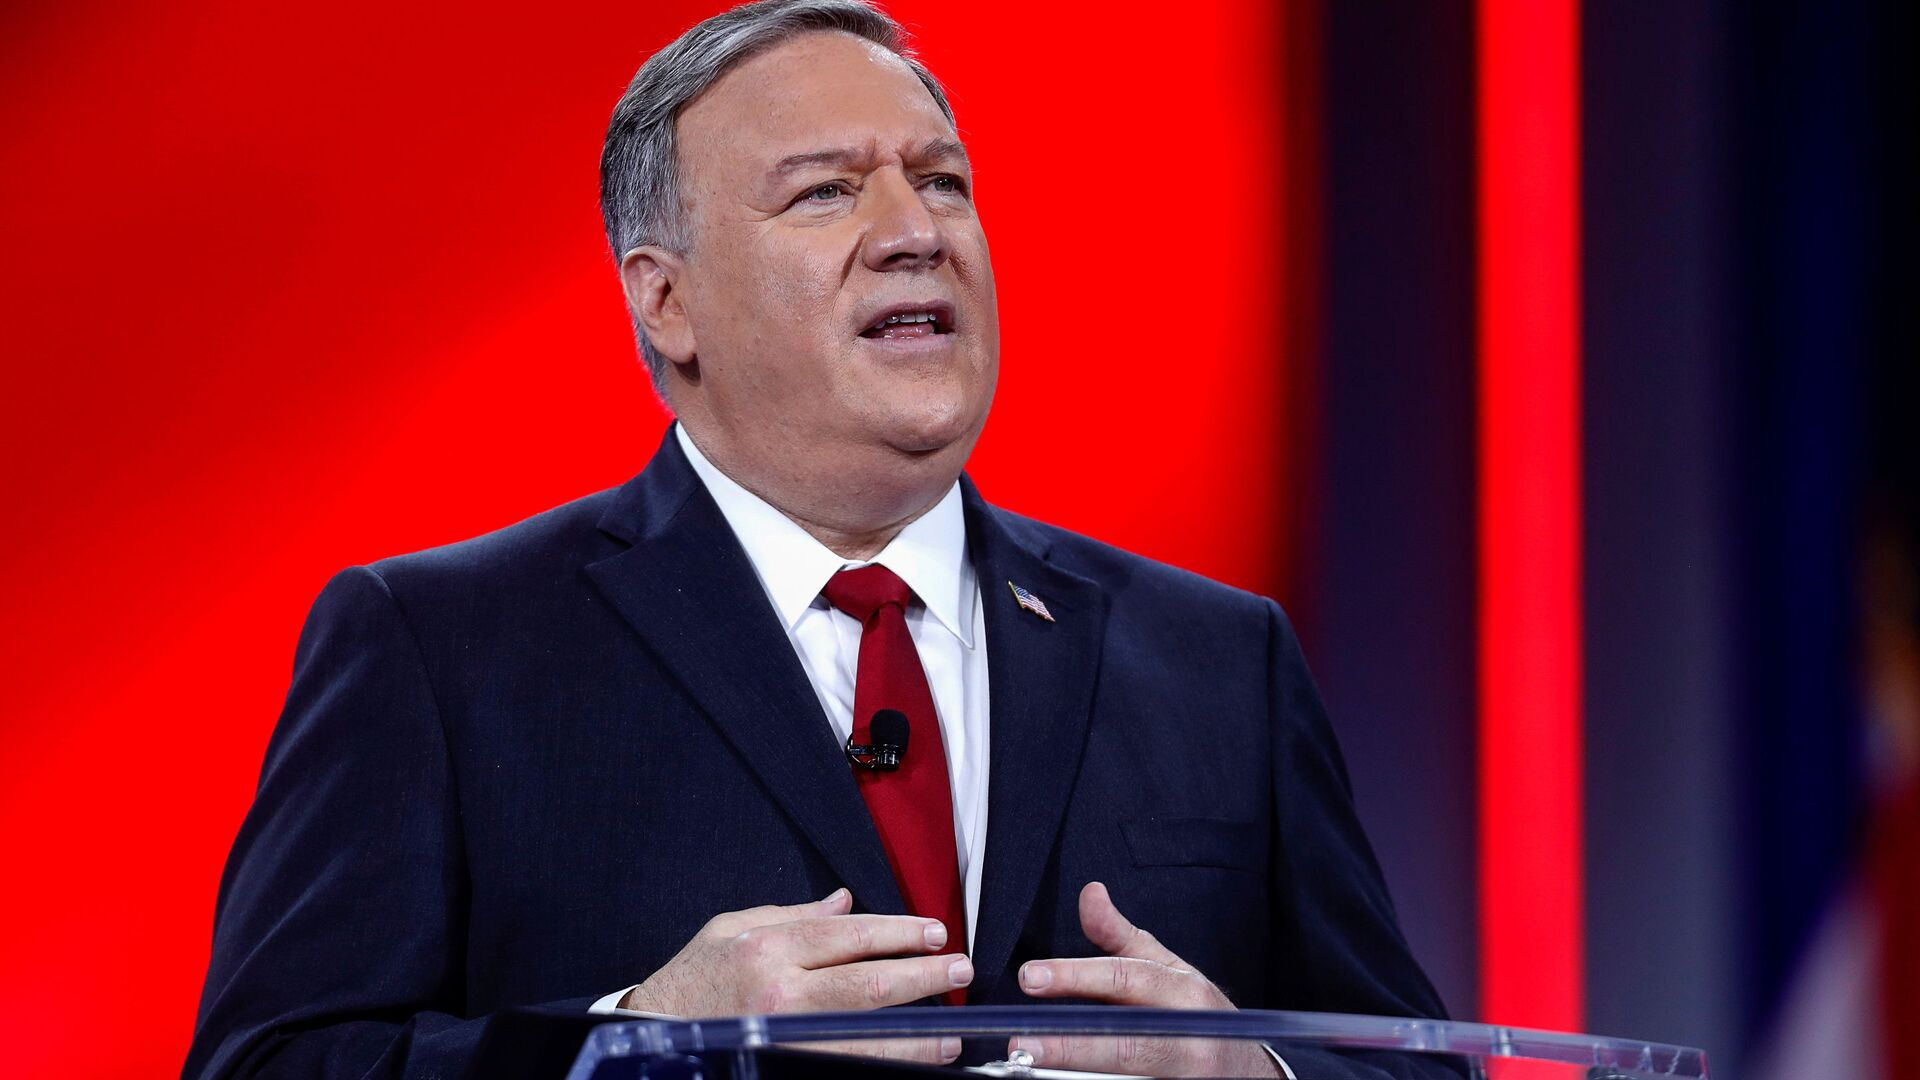 Former U.S. Secretary of State Mike Pompeo speaks at the Conservative Political Action Conference (CPAC) in Orlando, Florida, U.S. February 27, 2021.  - Sputnik International, 1920, 01.03.2021